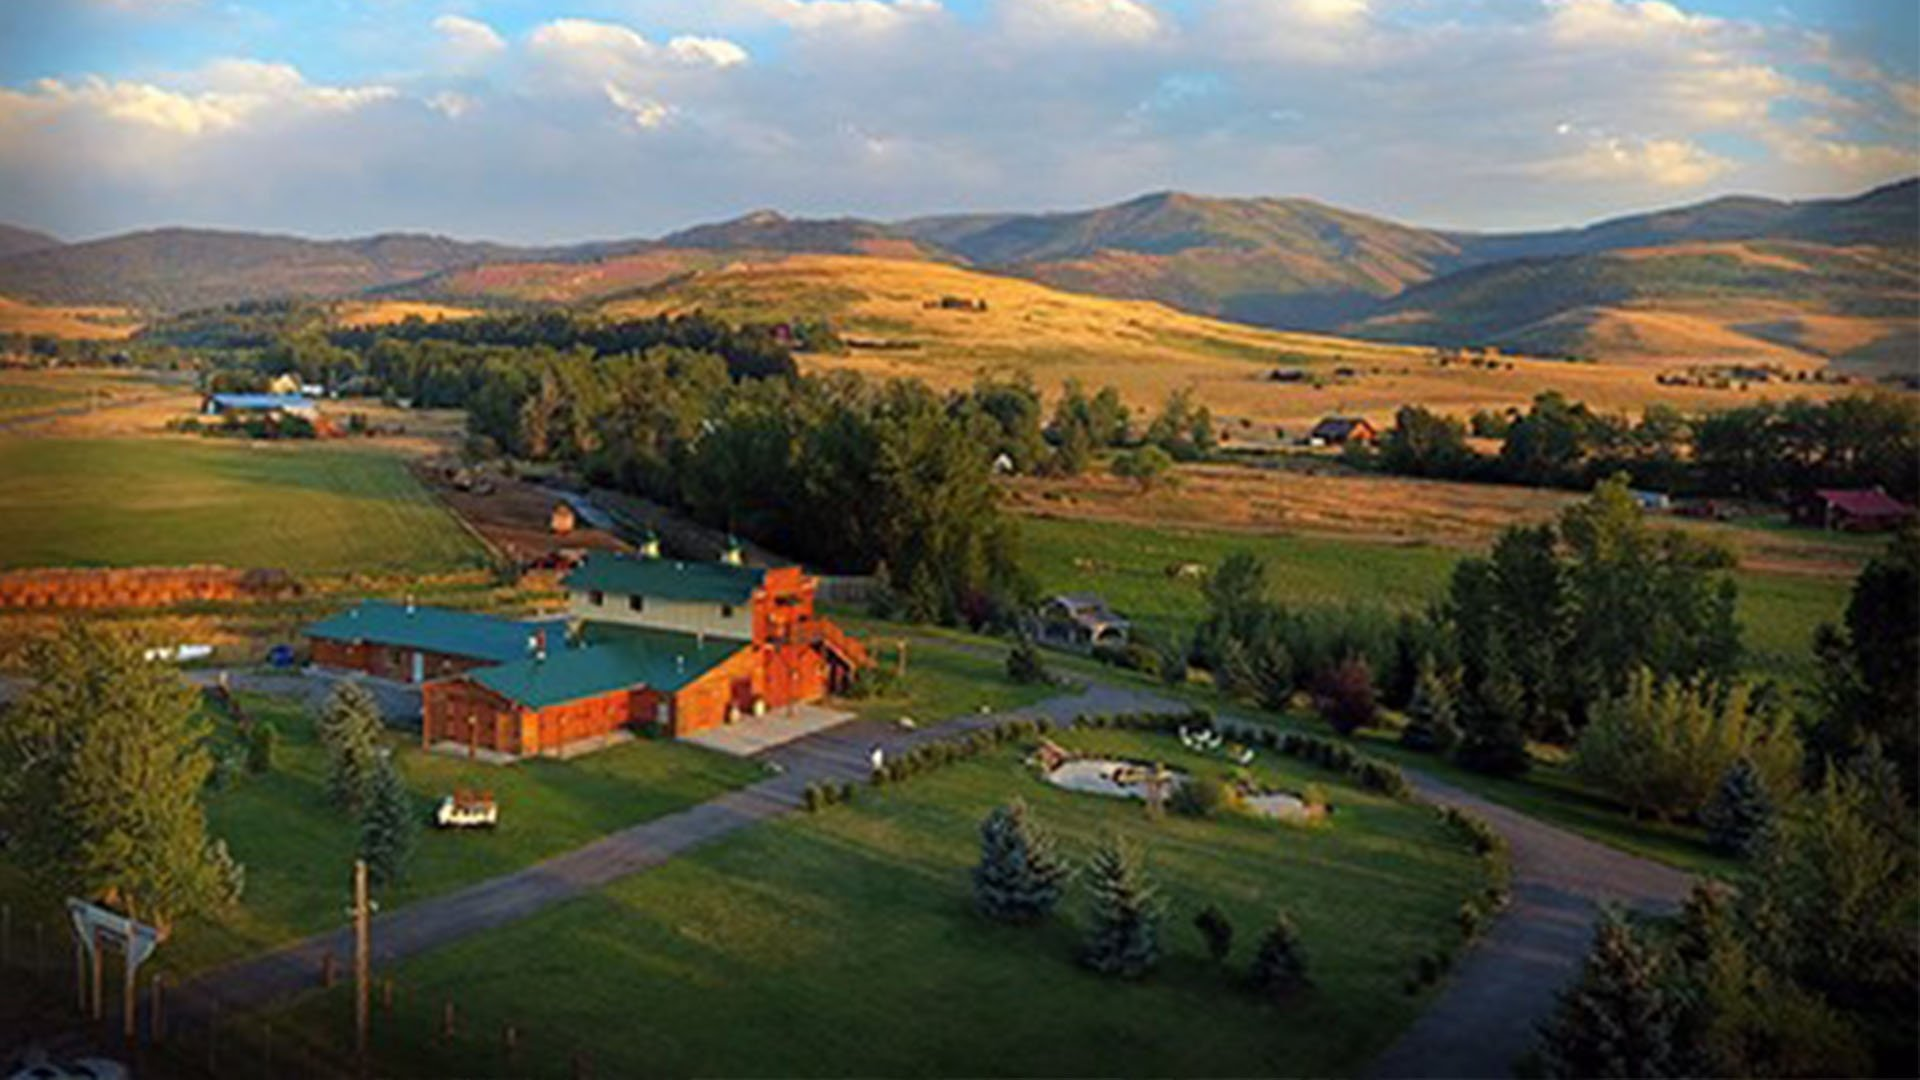 Aerial View of Hart Ranch in Gallatin Gateway Montana near the Spanish Peaks